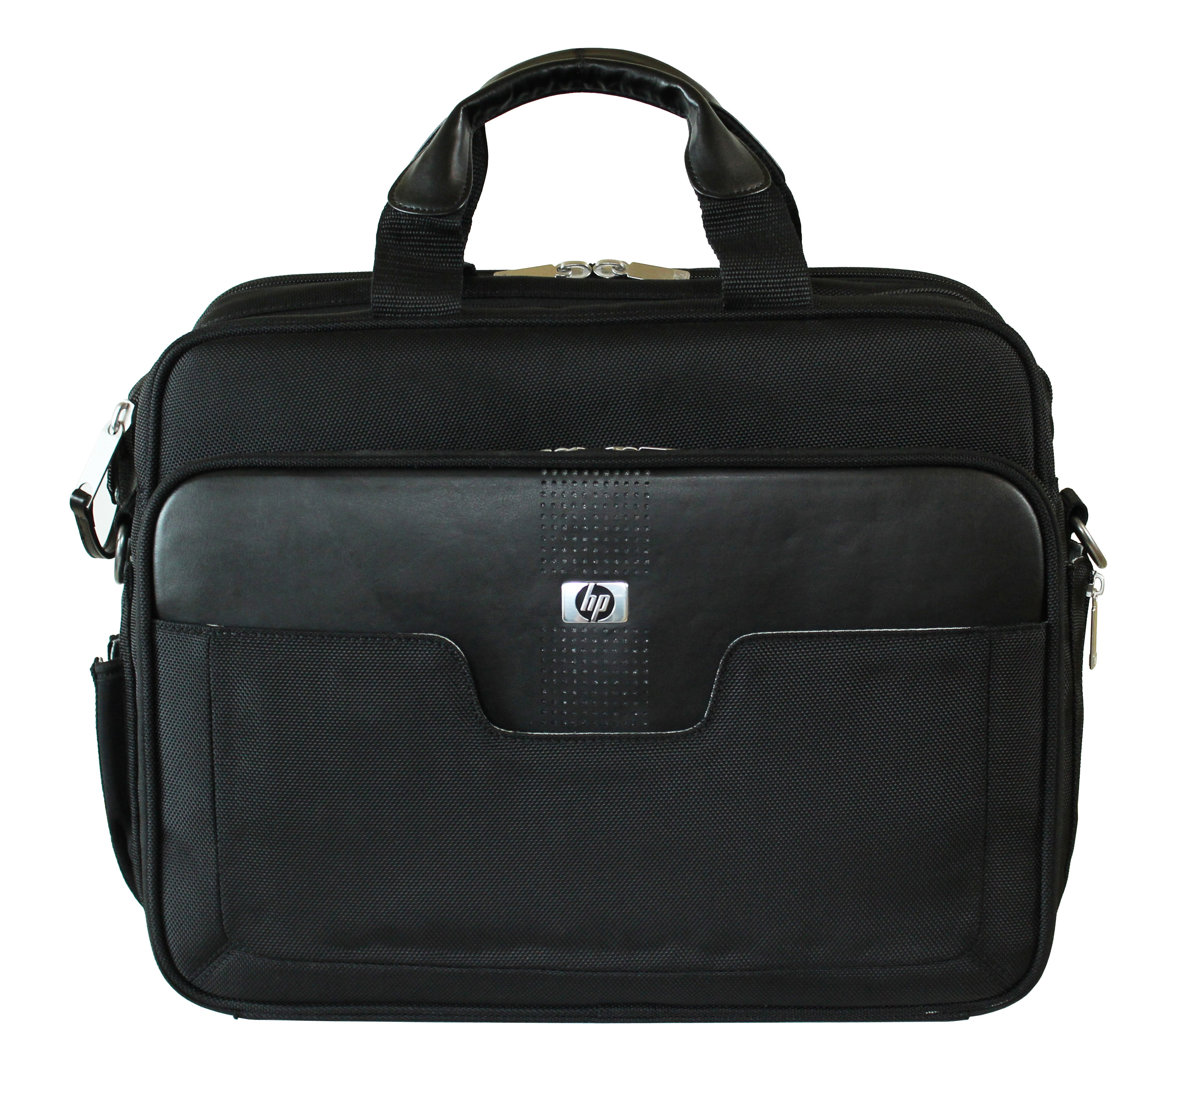 Laptop bags office depot - Slide 1 Of 1 Show Larger Image Hp Mobile Printer And Notebook Case